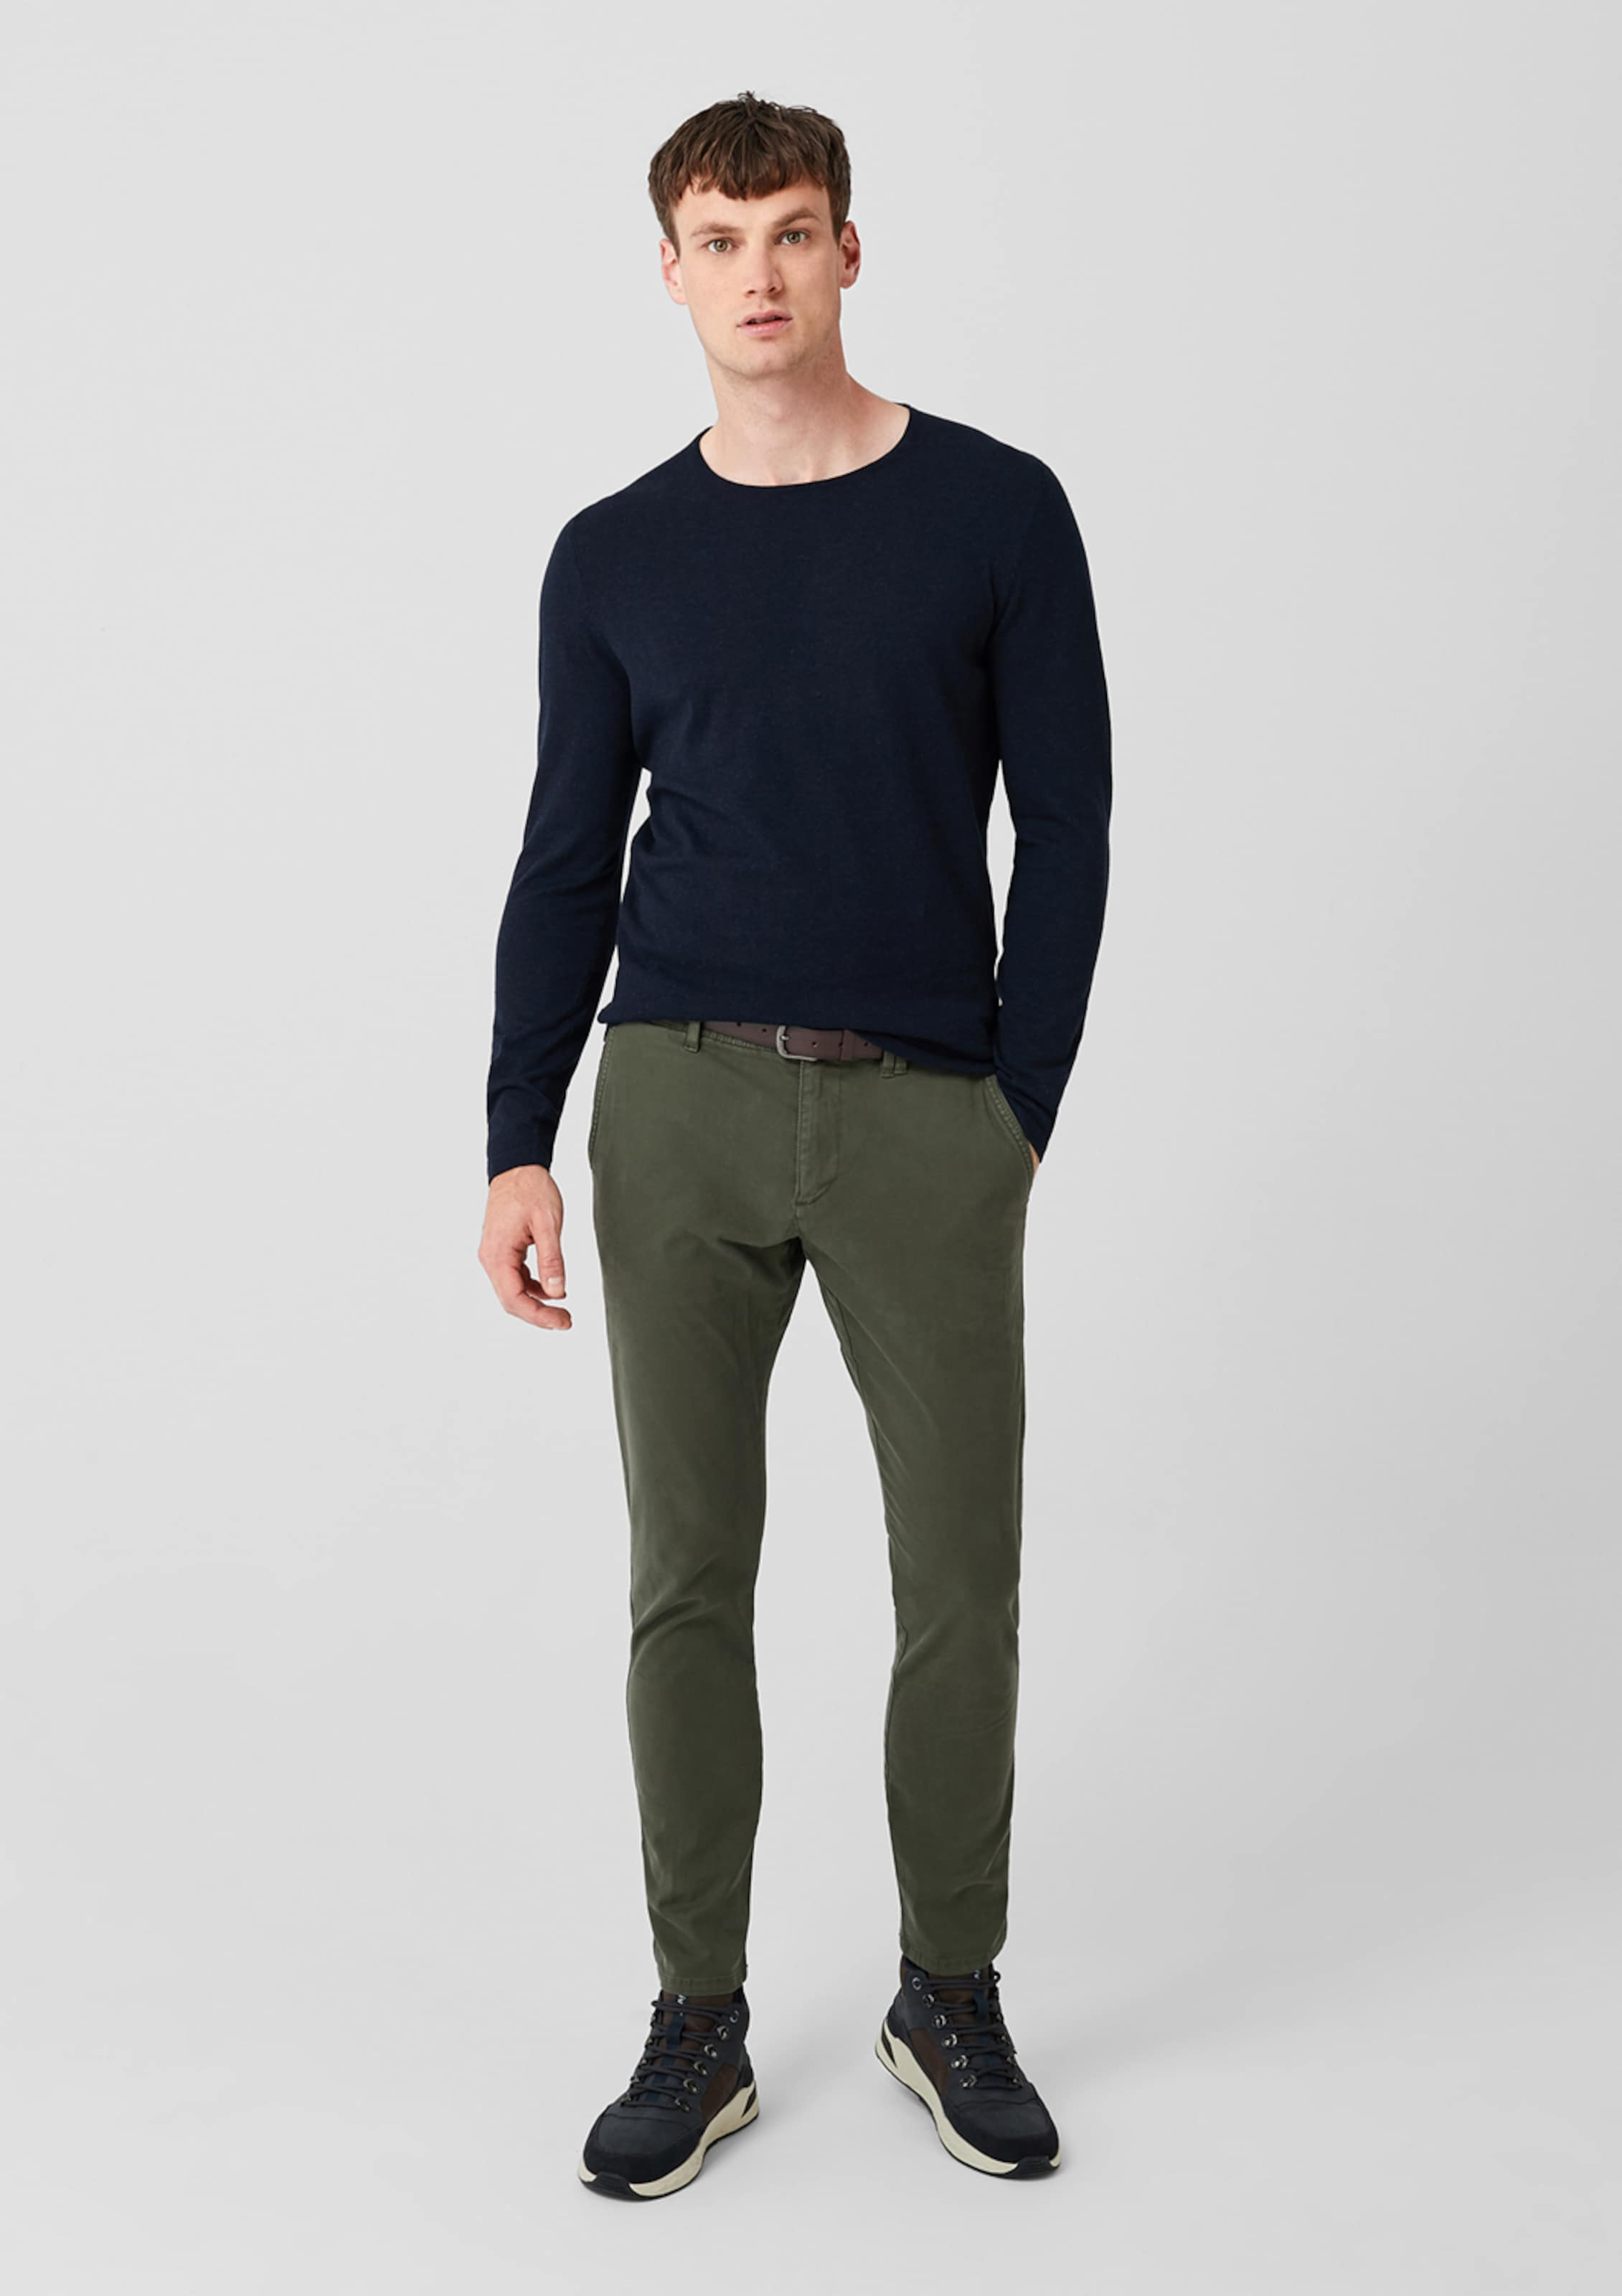 oliver S Nachtblau Pullover In oliver Nachtblau oliver S S In Pullover IWHD9YE2